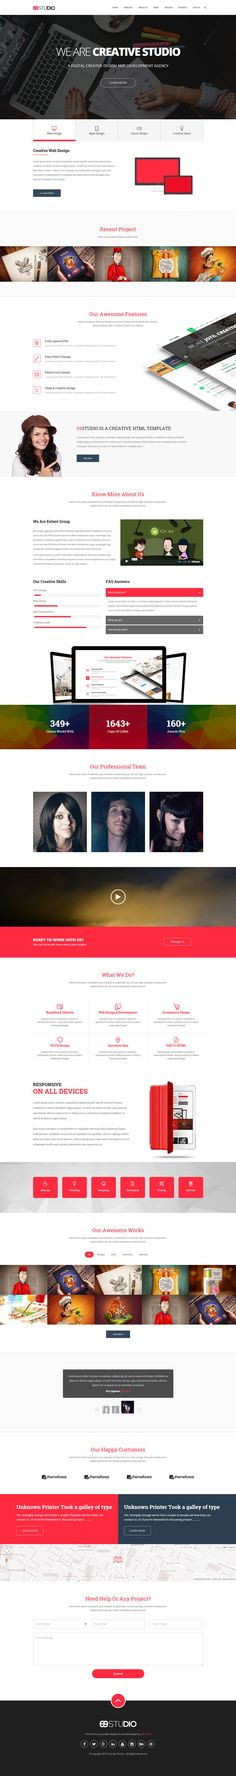 '69Studio' is a responsive One Page HTML template suited for digital agencies. The header area comes with 3 background options: slideshow, parallax and video. Scrolljacking aside, the template has all the regular portfolio sections you'll need and ends strong with a big clear contact form and footer. Good to see a 5 star rating currently on ThemeForest.